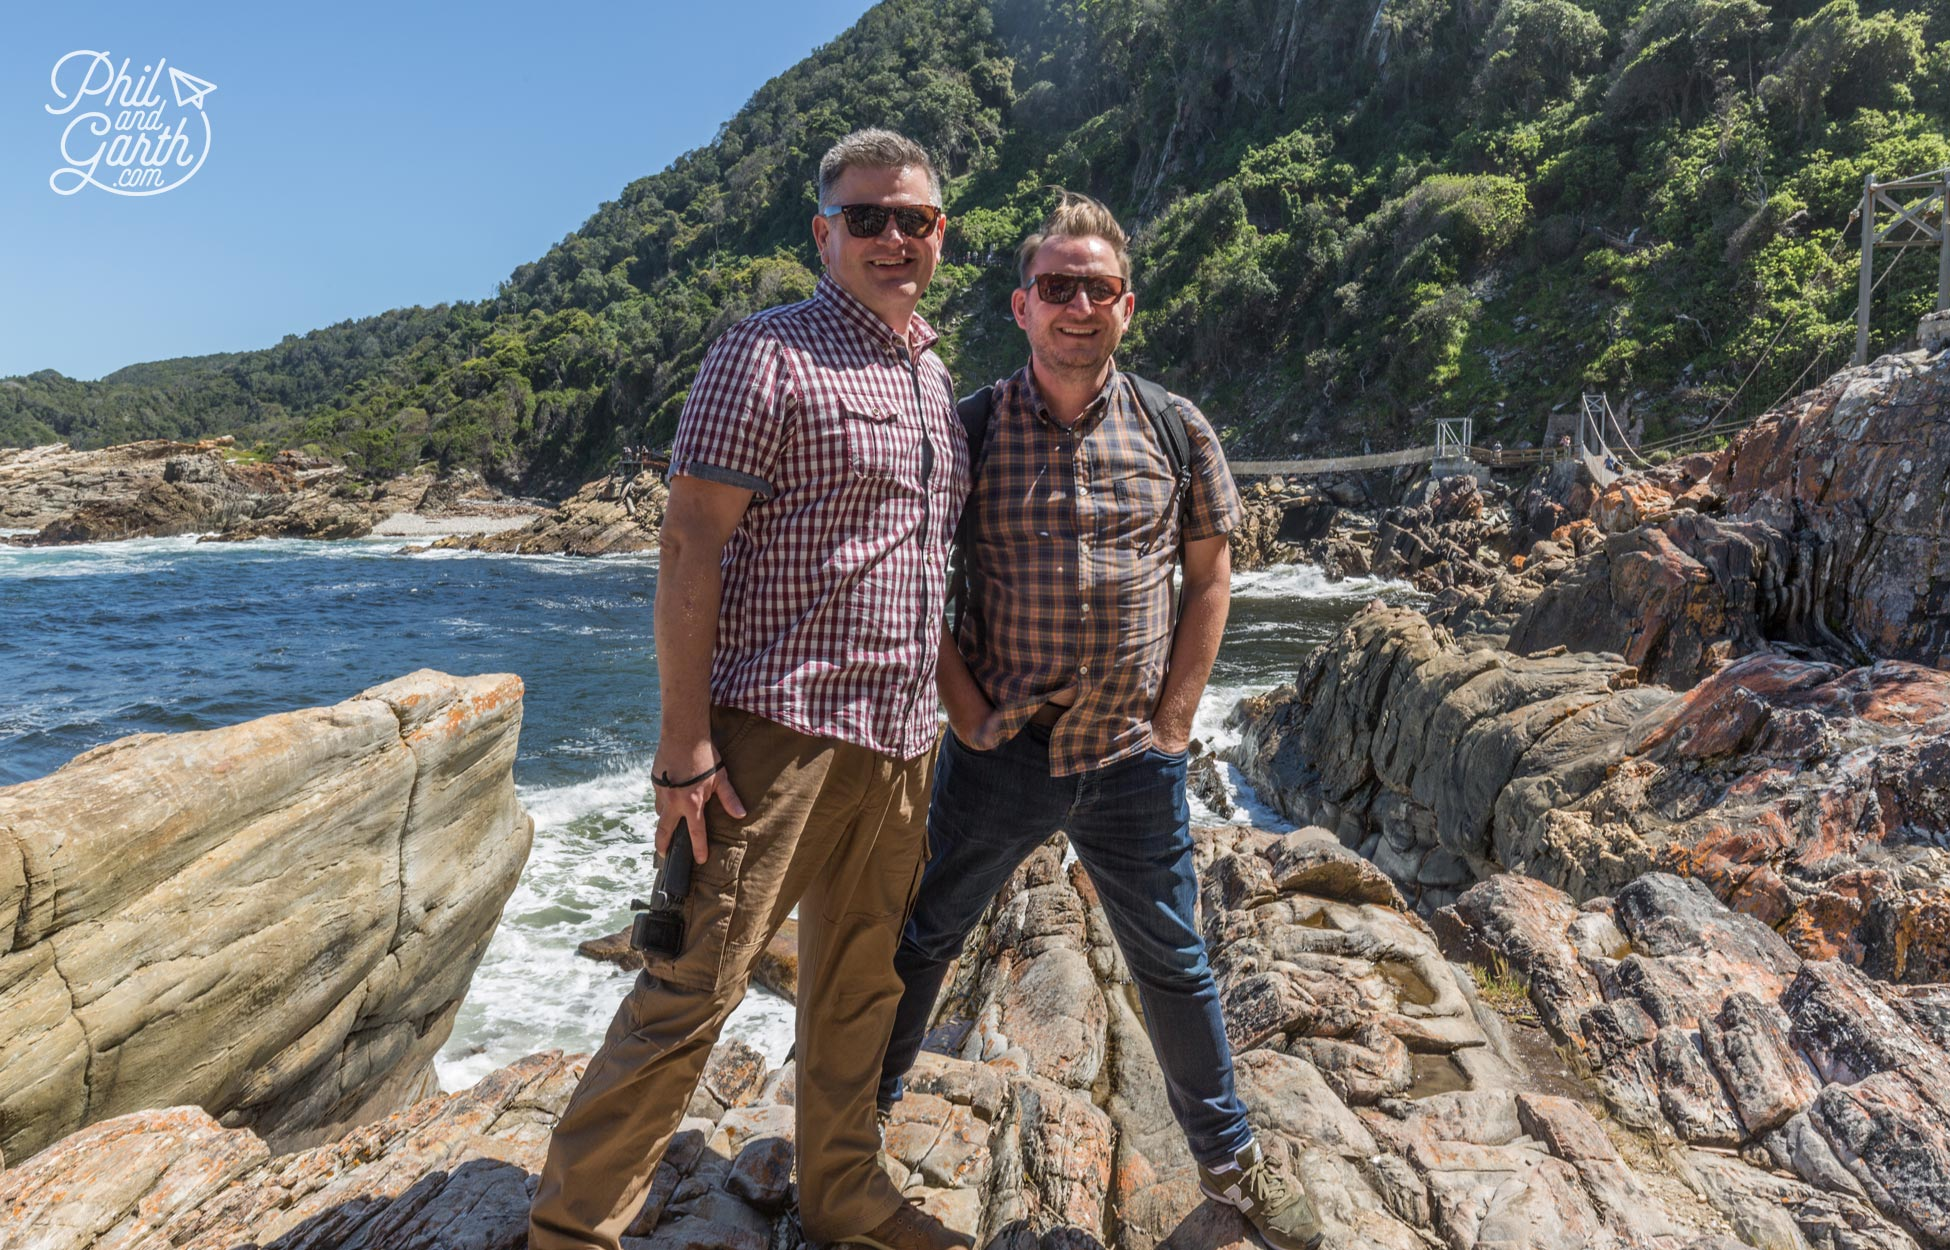 Phil and Garth's Top 5 Garden Route Tips